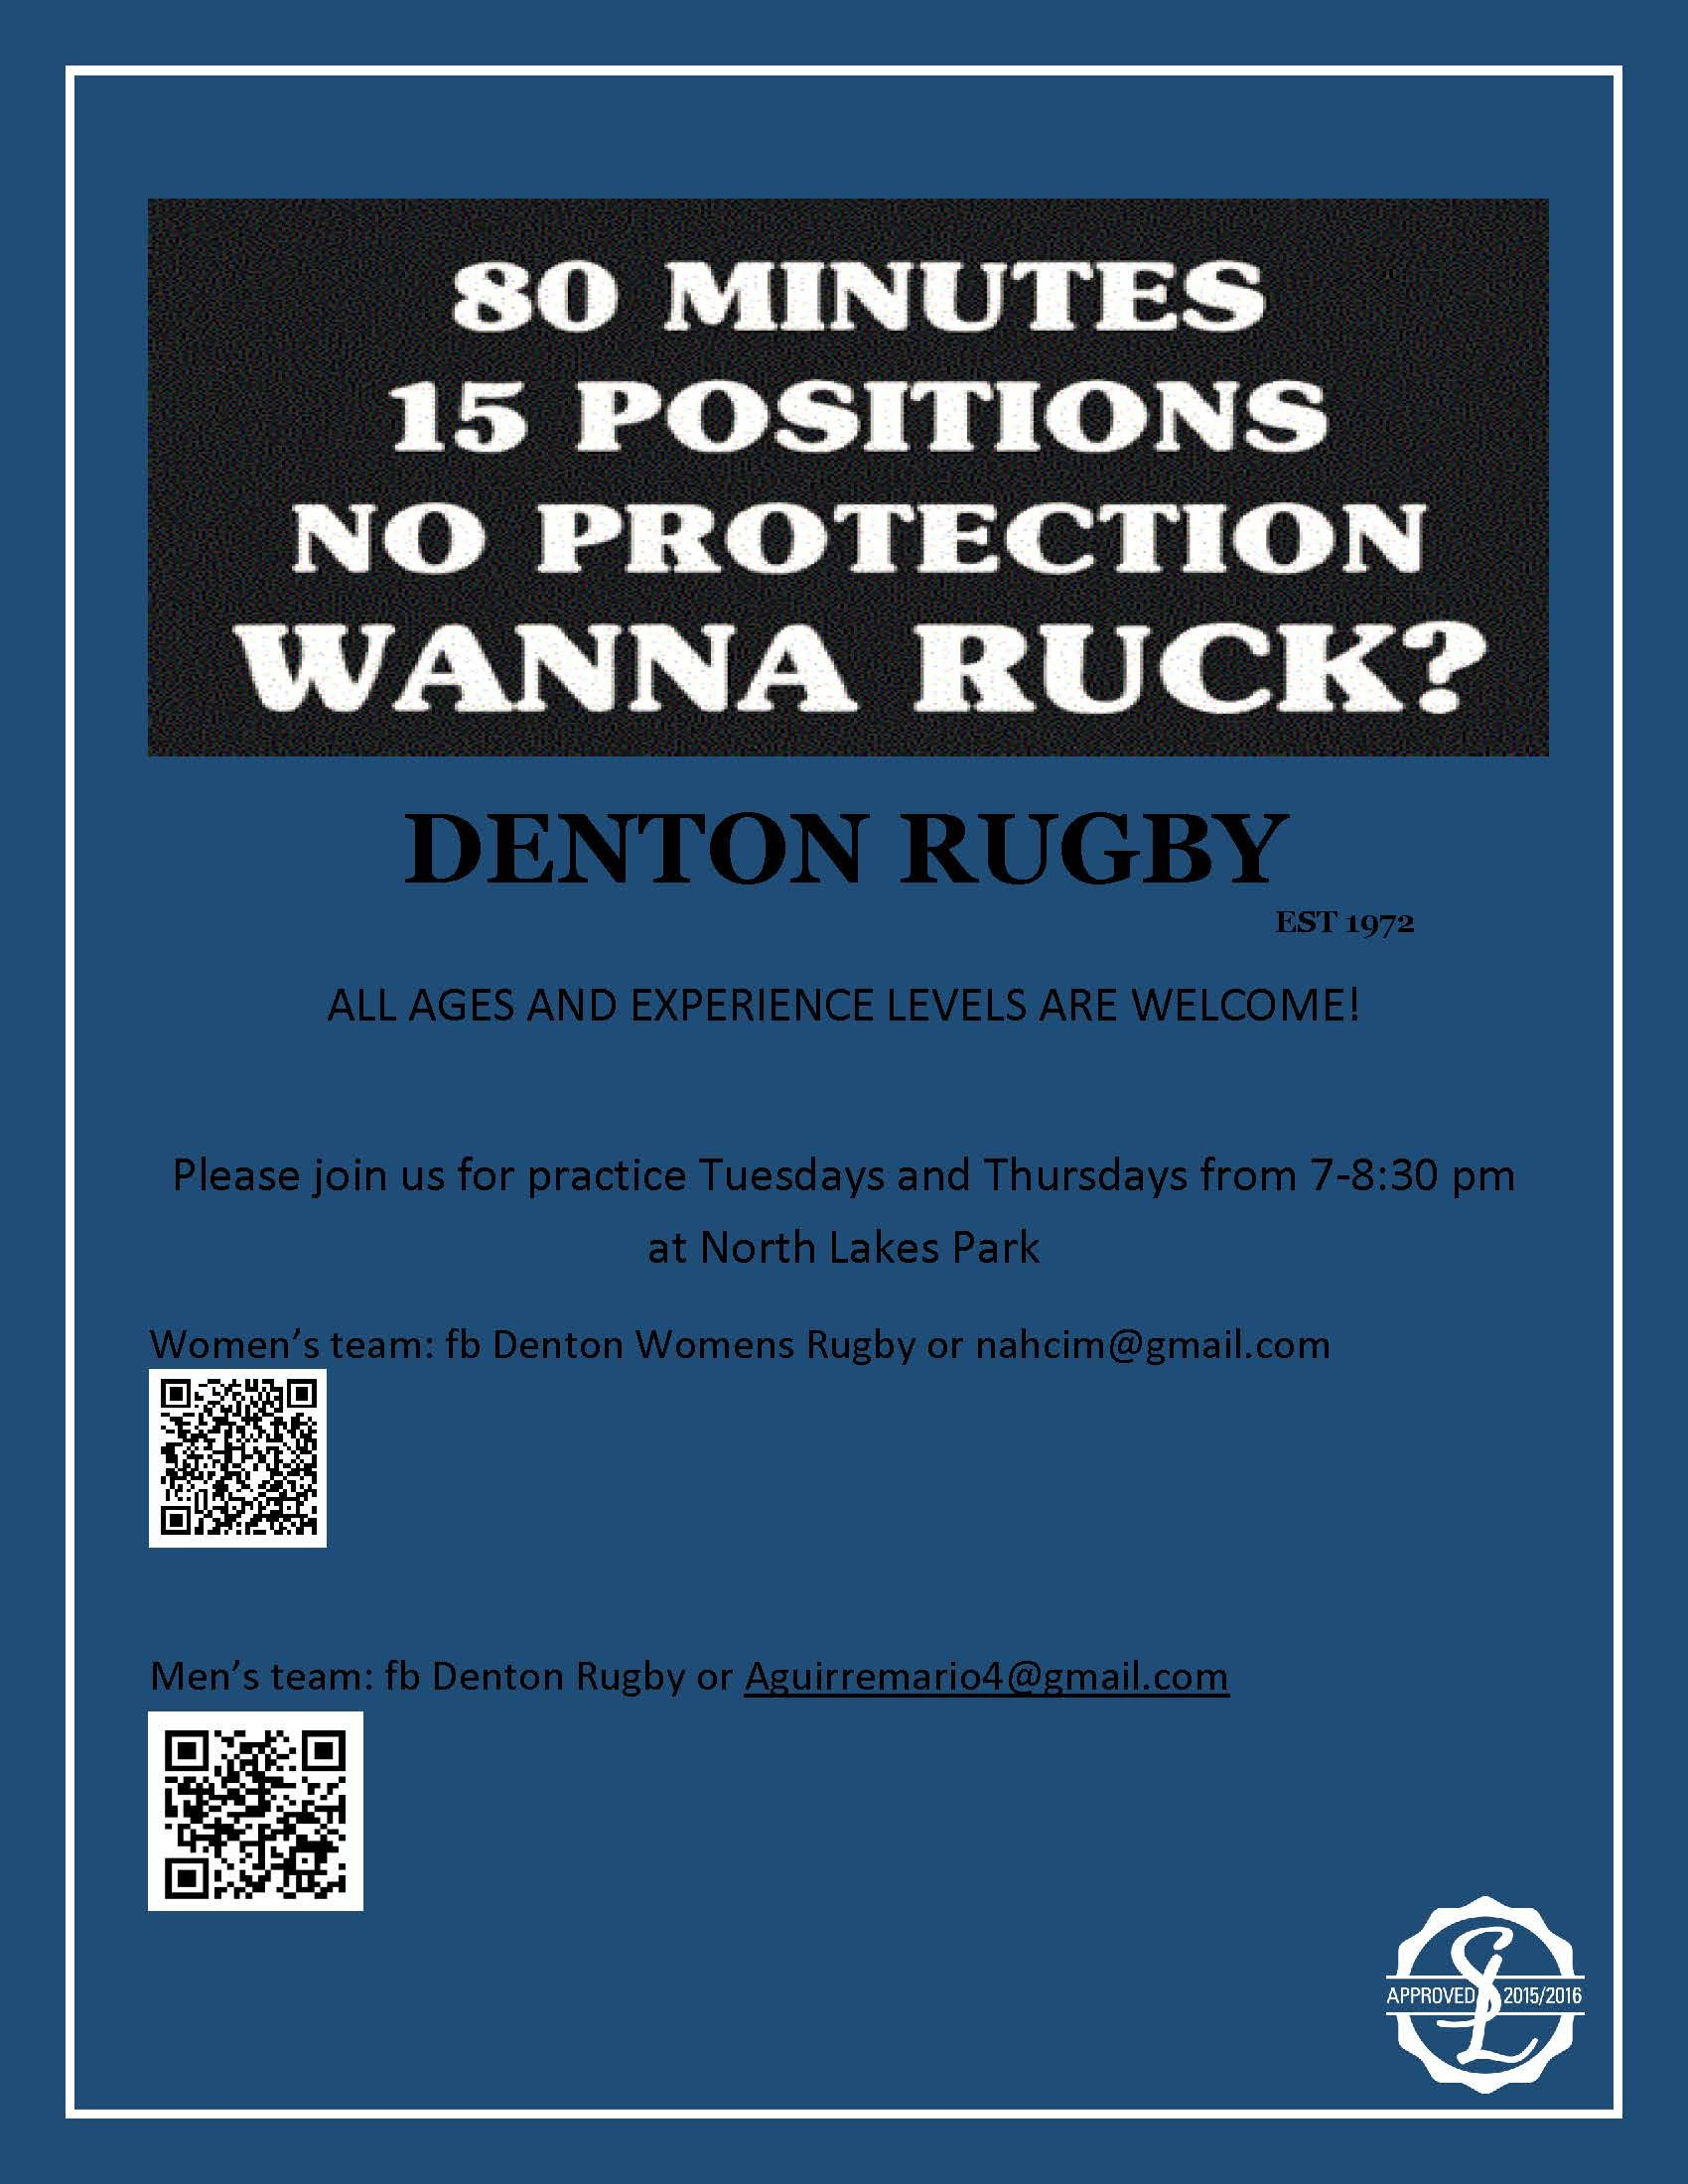 Rugby Recruitment Flyer With Images Rugby Recruitment Womens